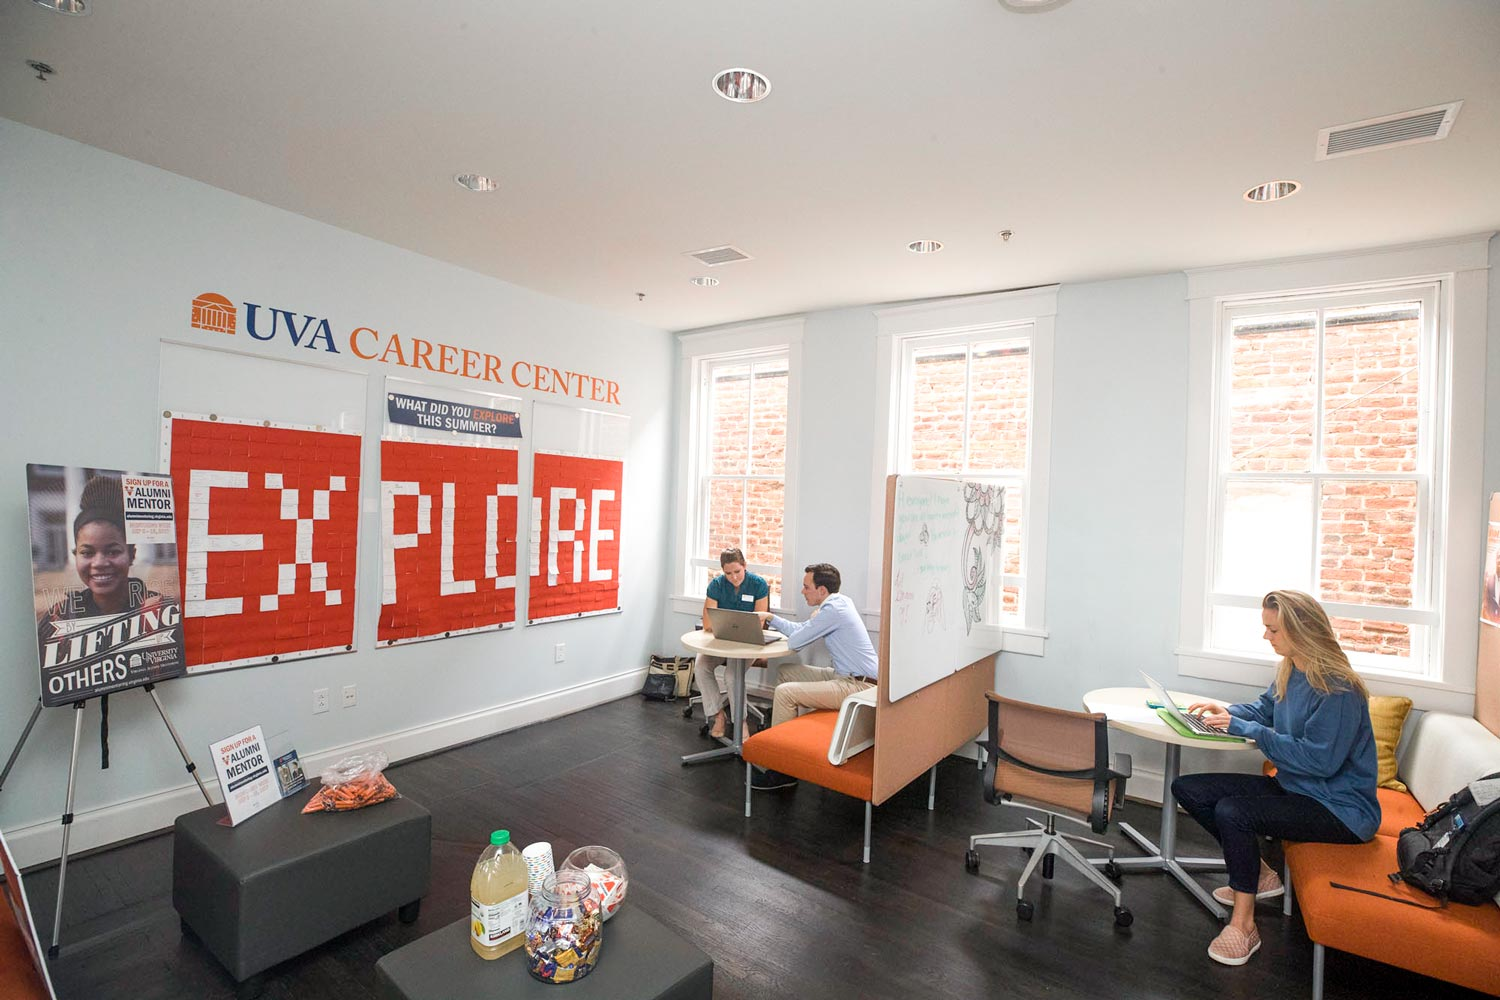 The second-floor space has plenty of room for students to talk with advisors, attend workshops, study and enjoy coffee and snacks.